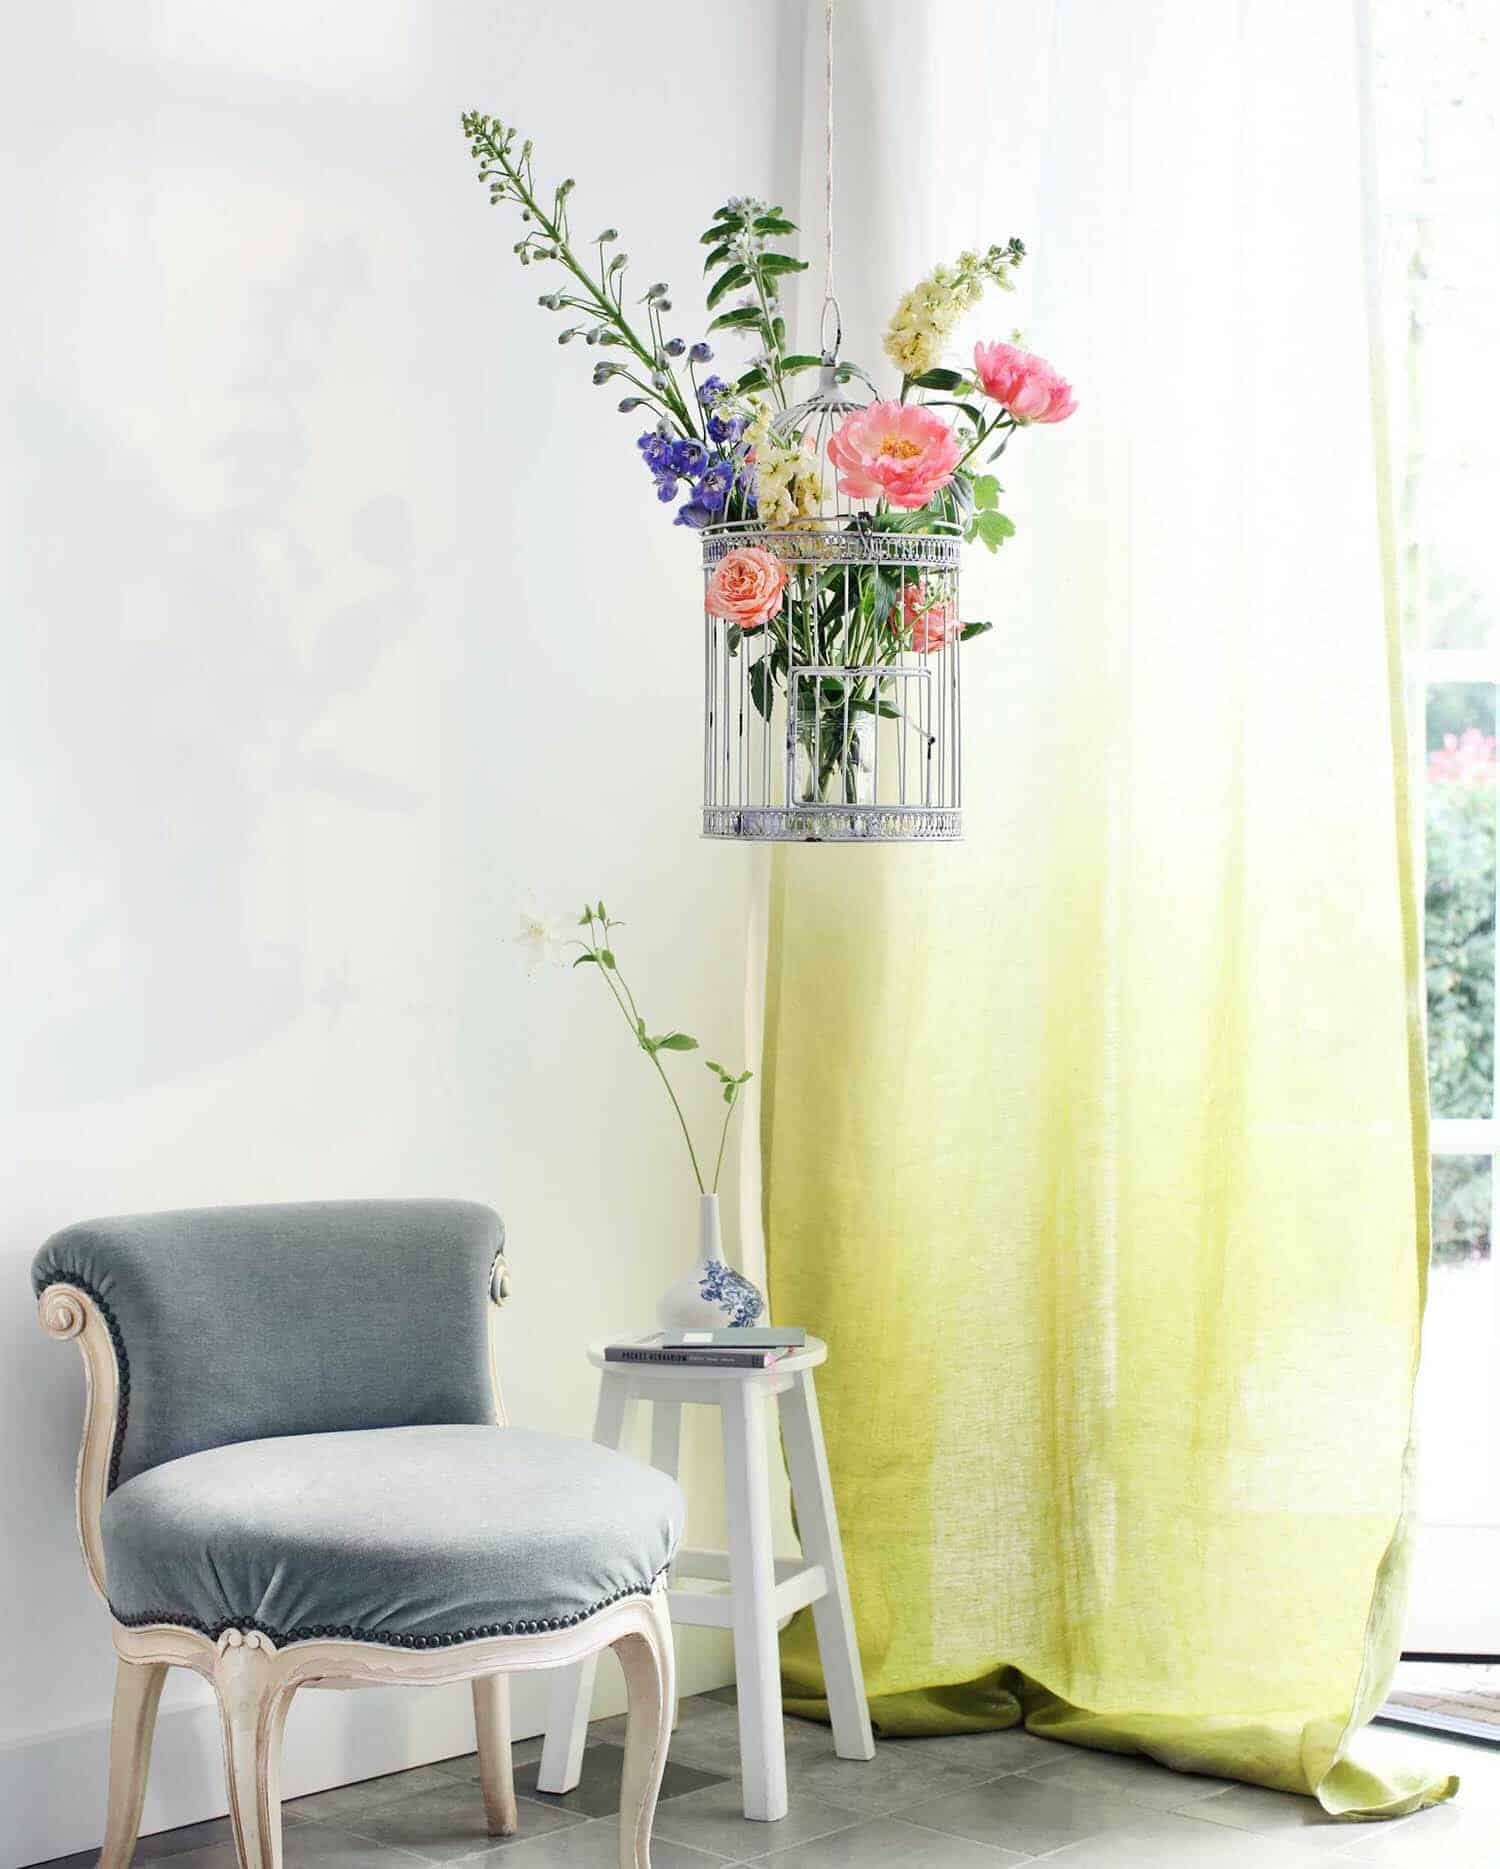 25 Ideas on how to decorate your home with Spring flower arrangements